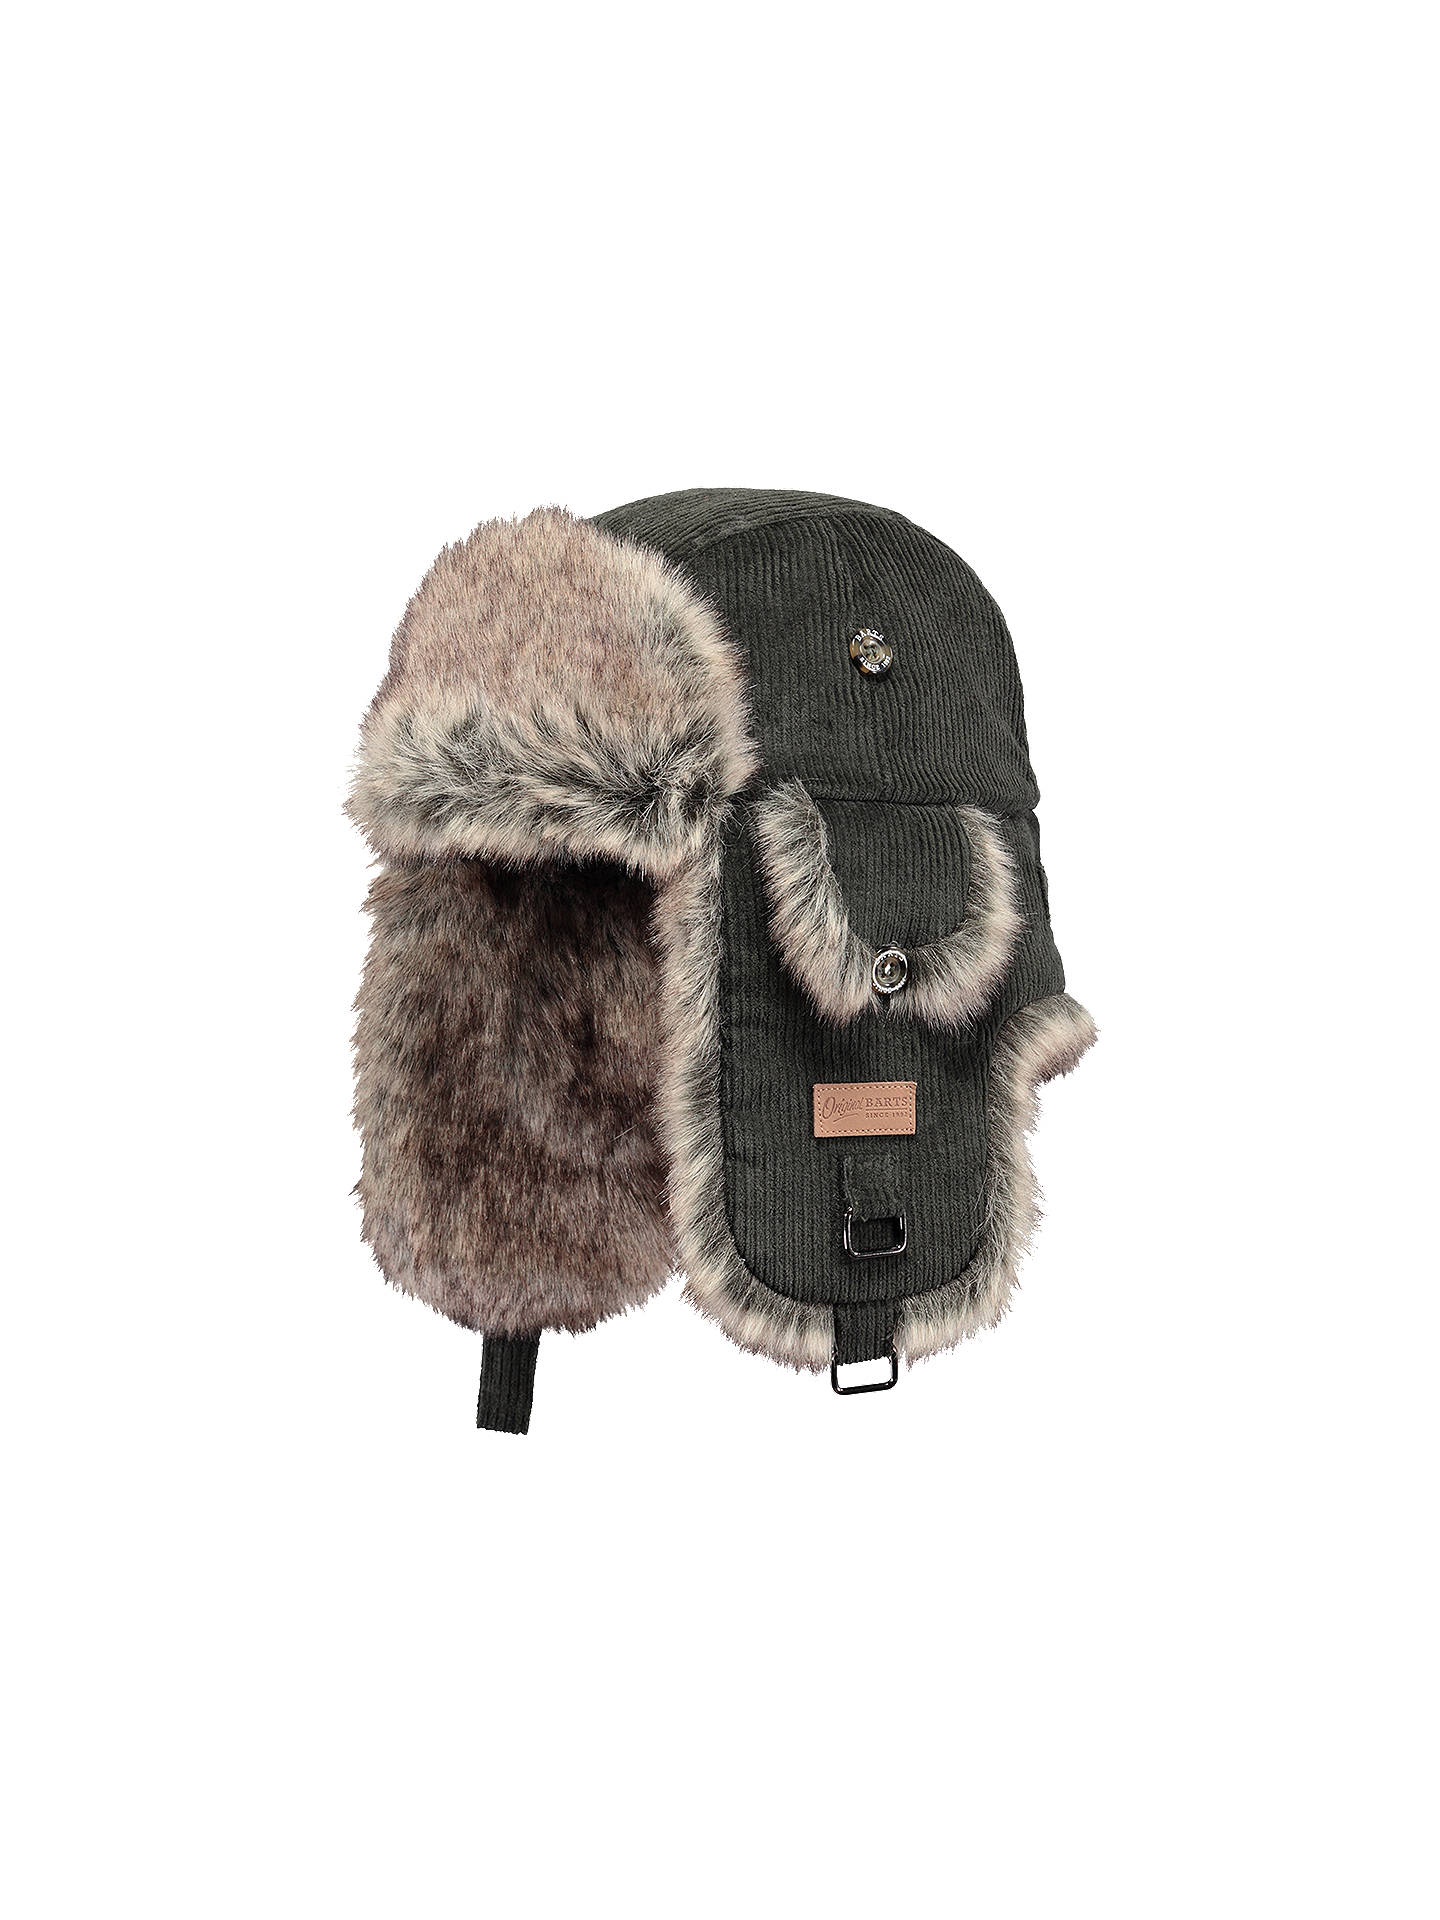 Buy Barts Rib Bomber Hat, Army Green Online at johnlewis.com